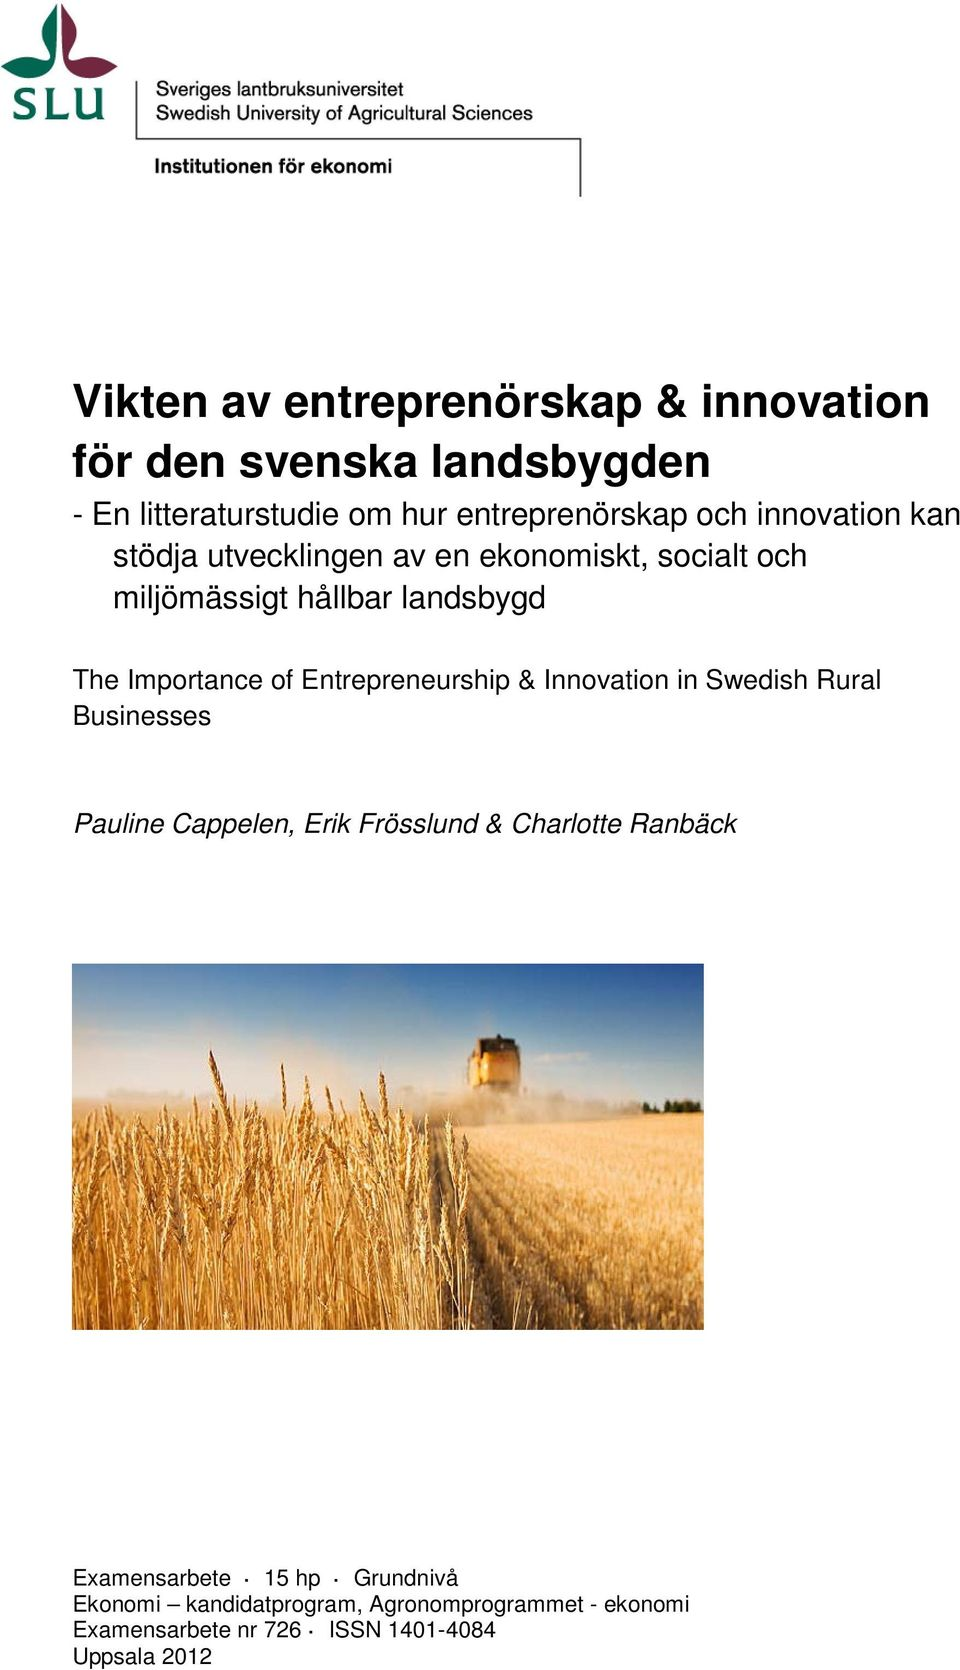 Entrepreneurship & Innovation in Swedish Rural Businesses Pauline Cappelen, Erik Frösslund & Charlotte Ranbäck